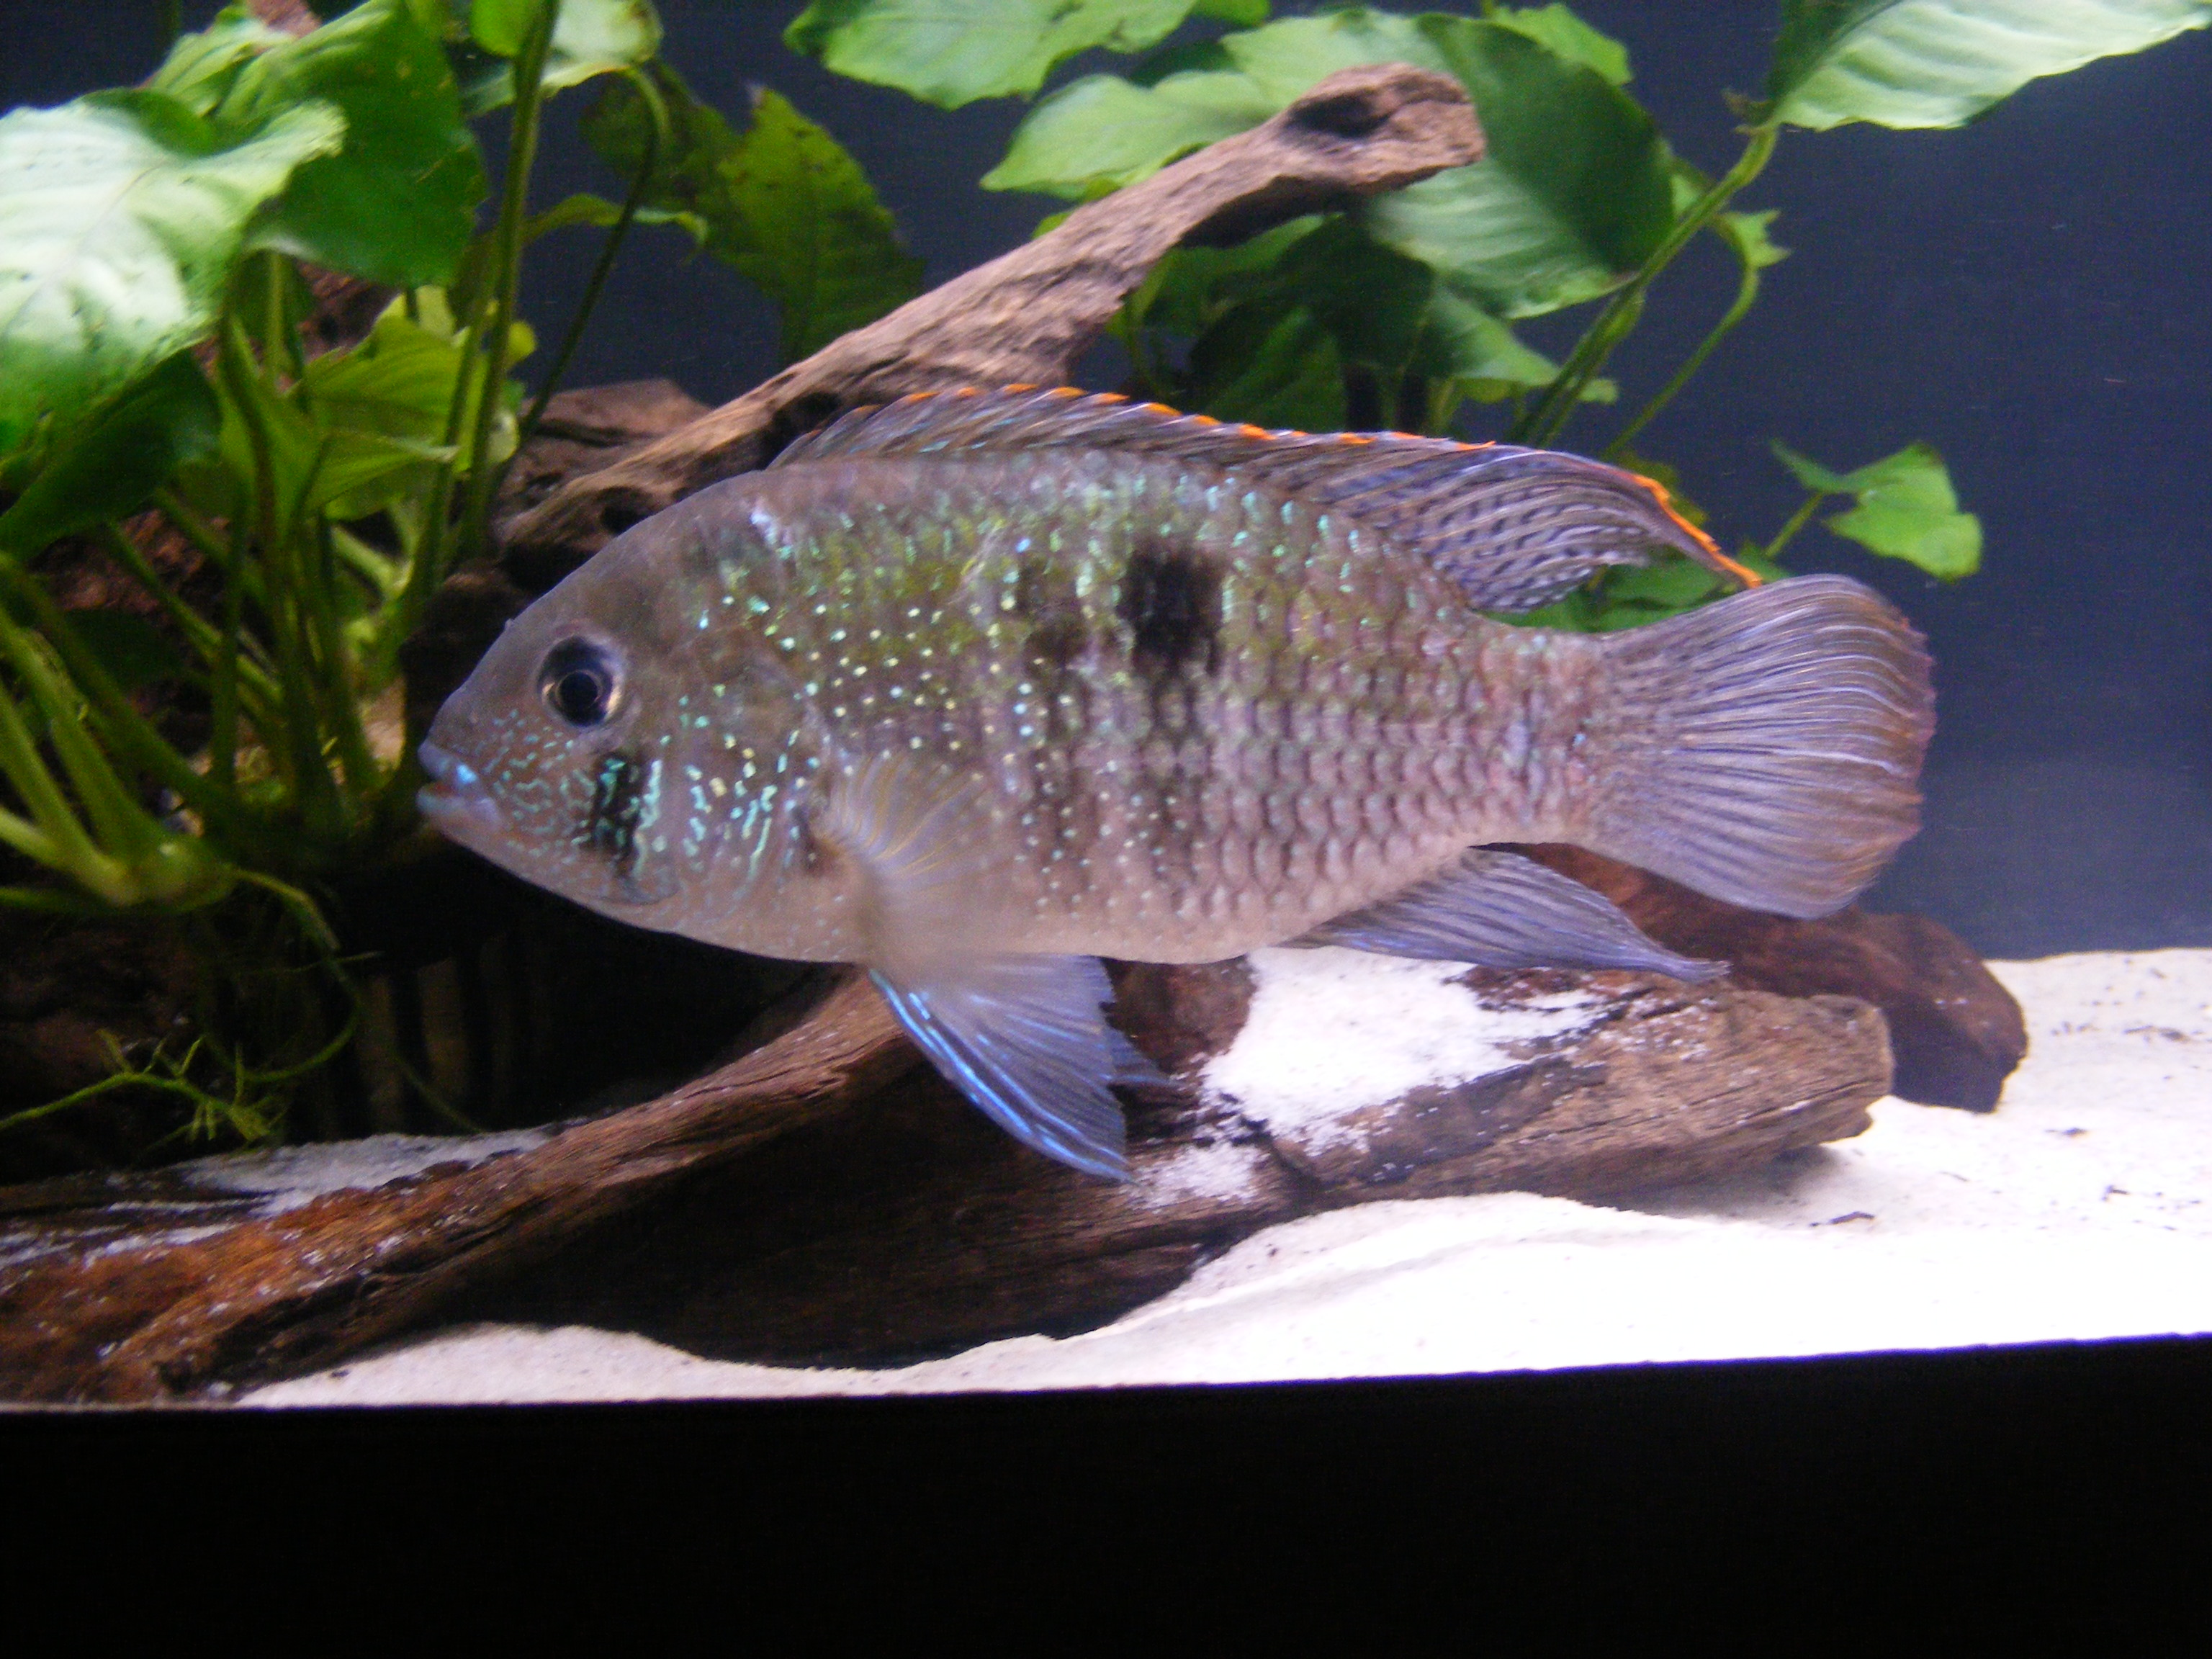 cichlids.com: My Adult Blue Acara